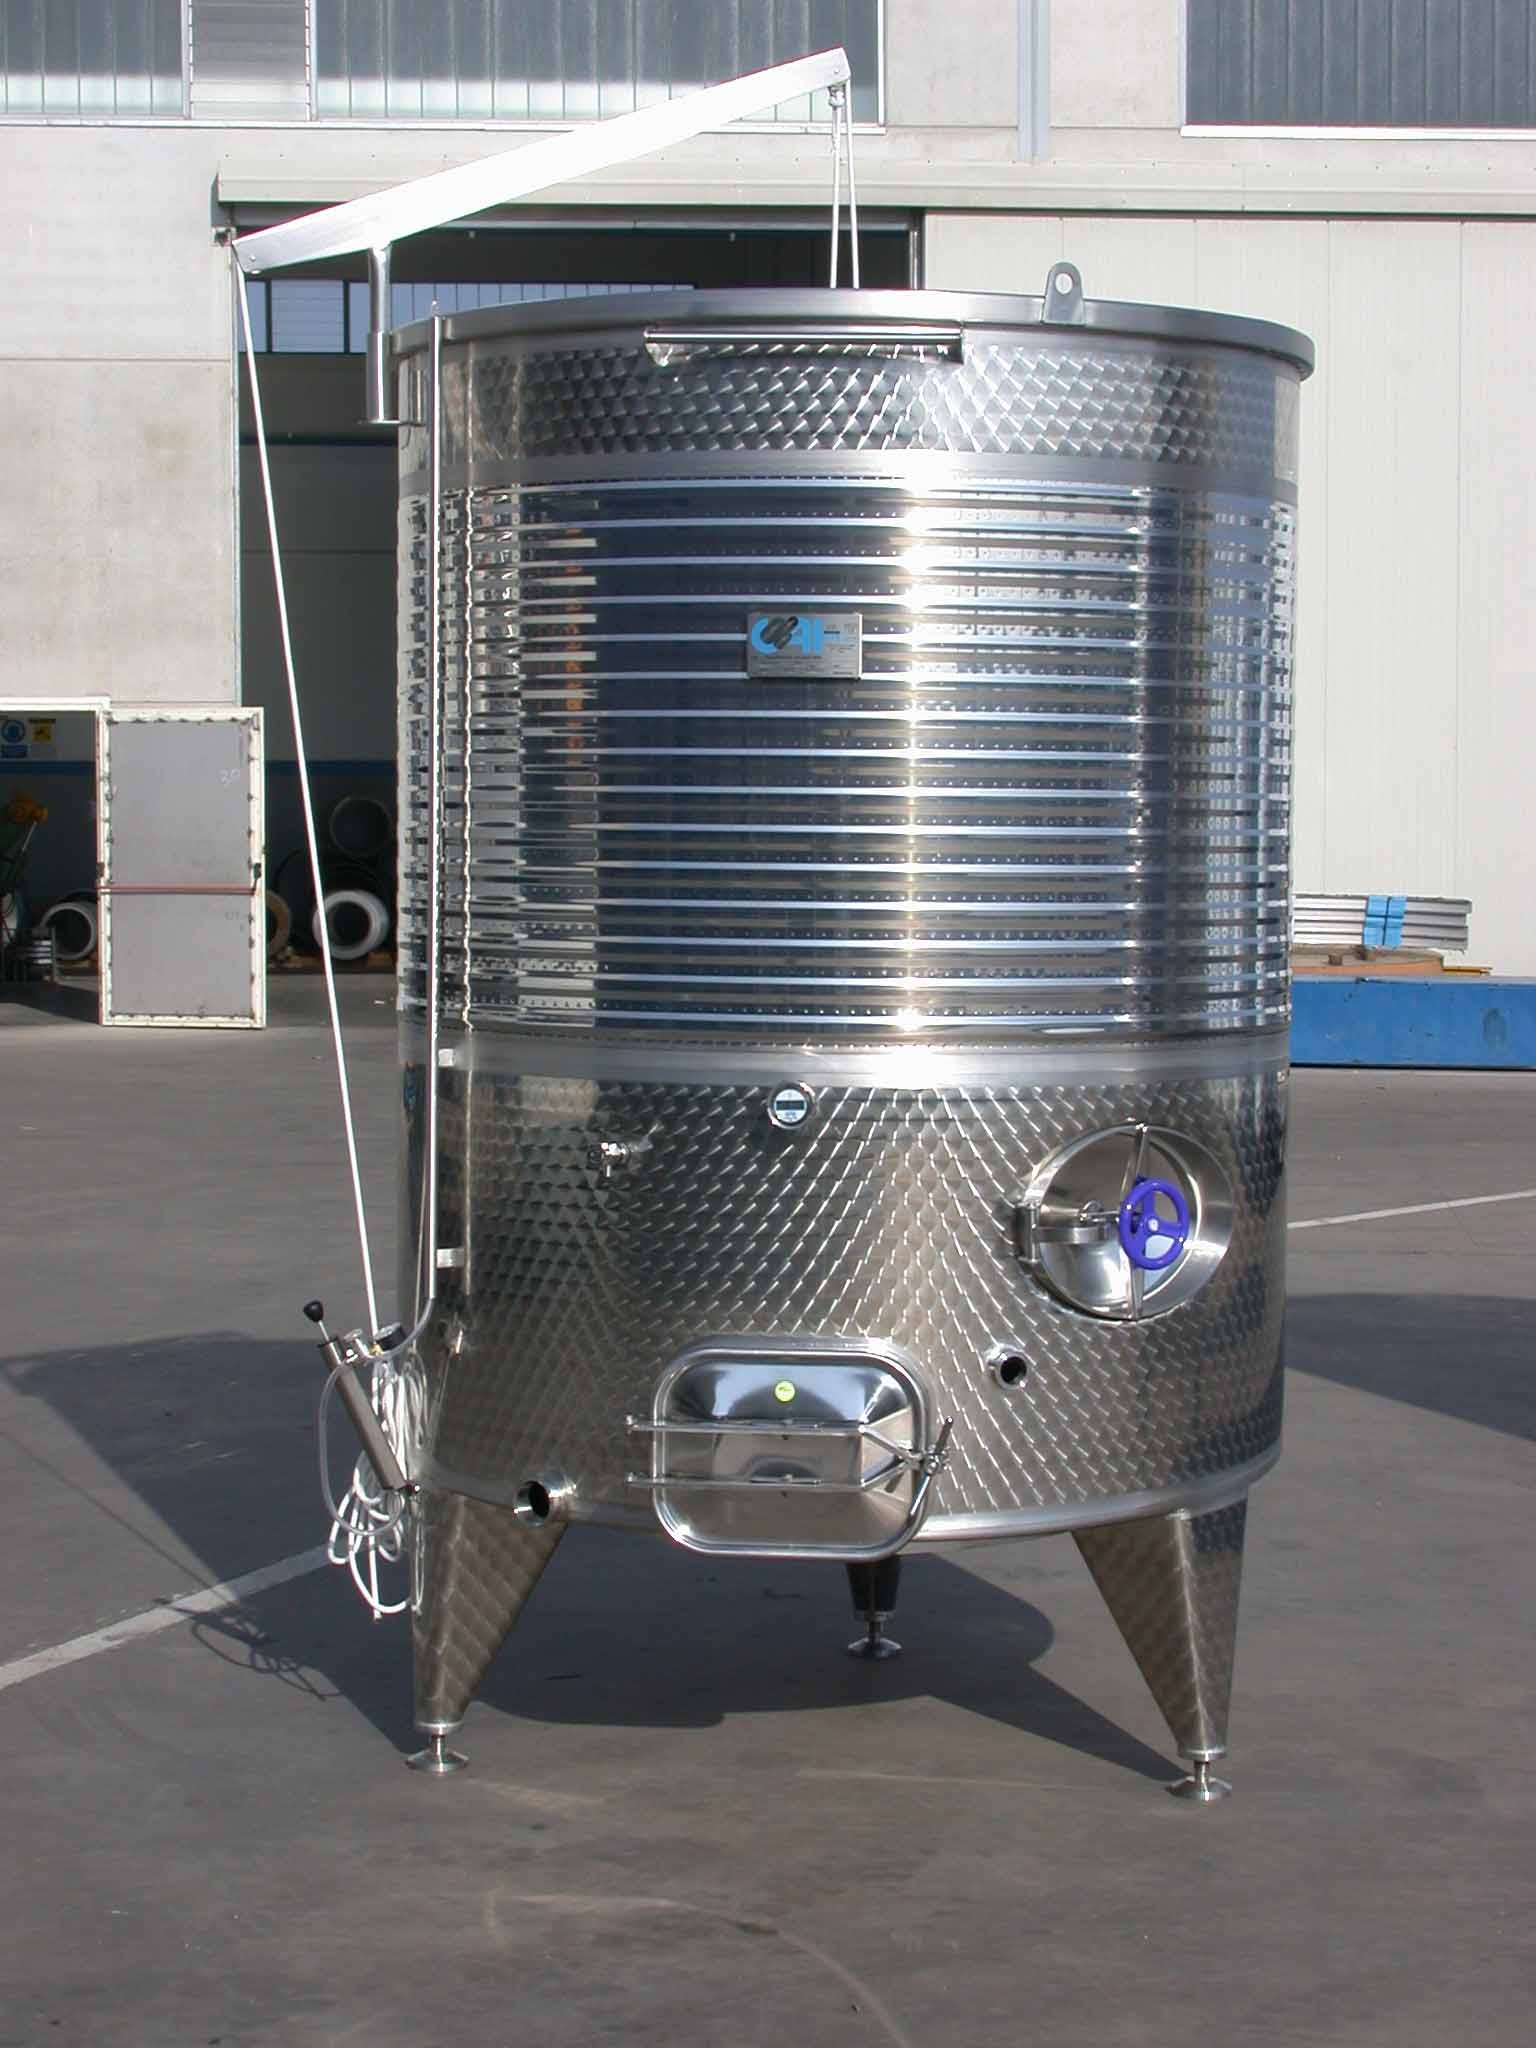 CAI TANKS Wine tank sold by Prospero Equipment Corp.